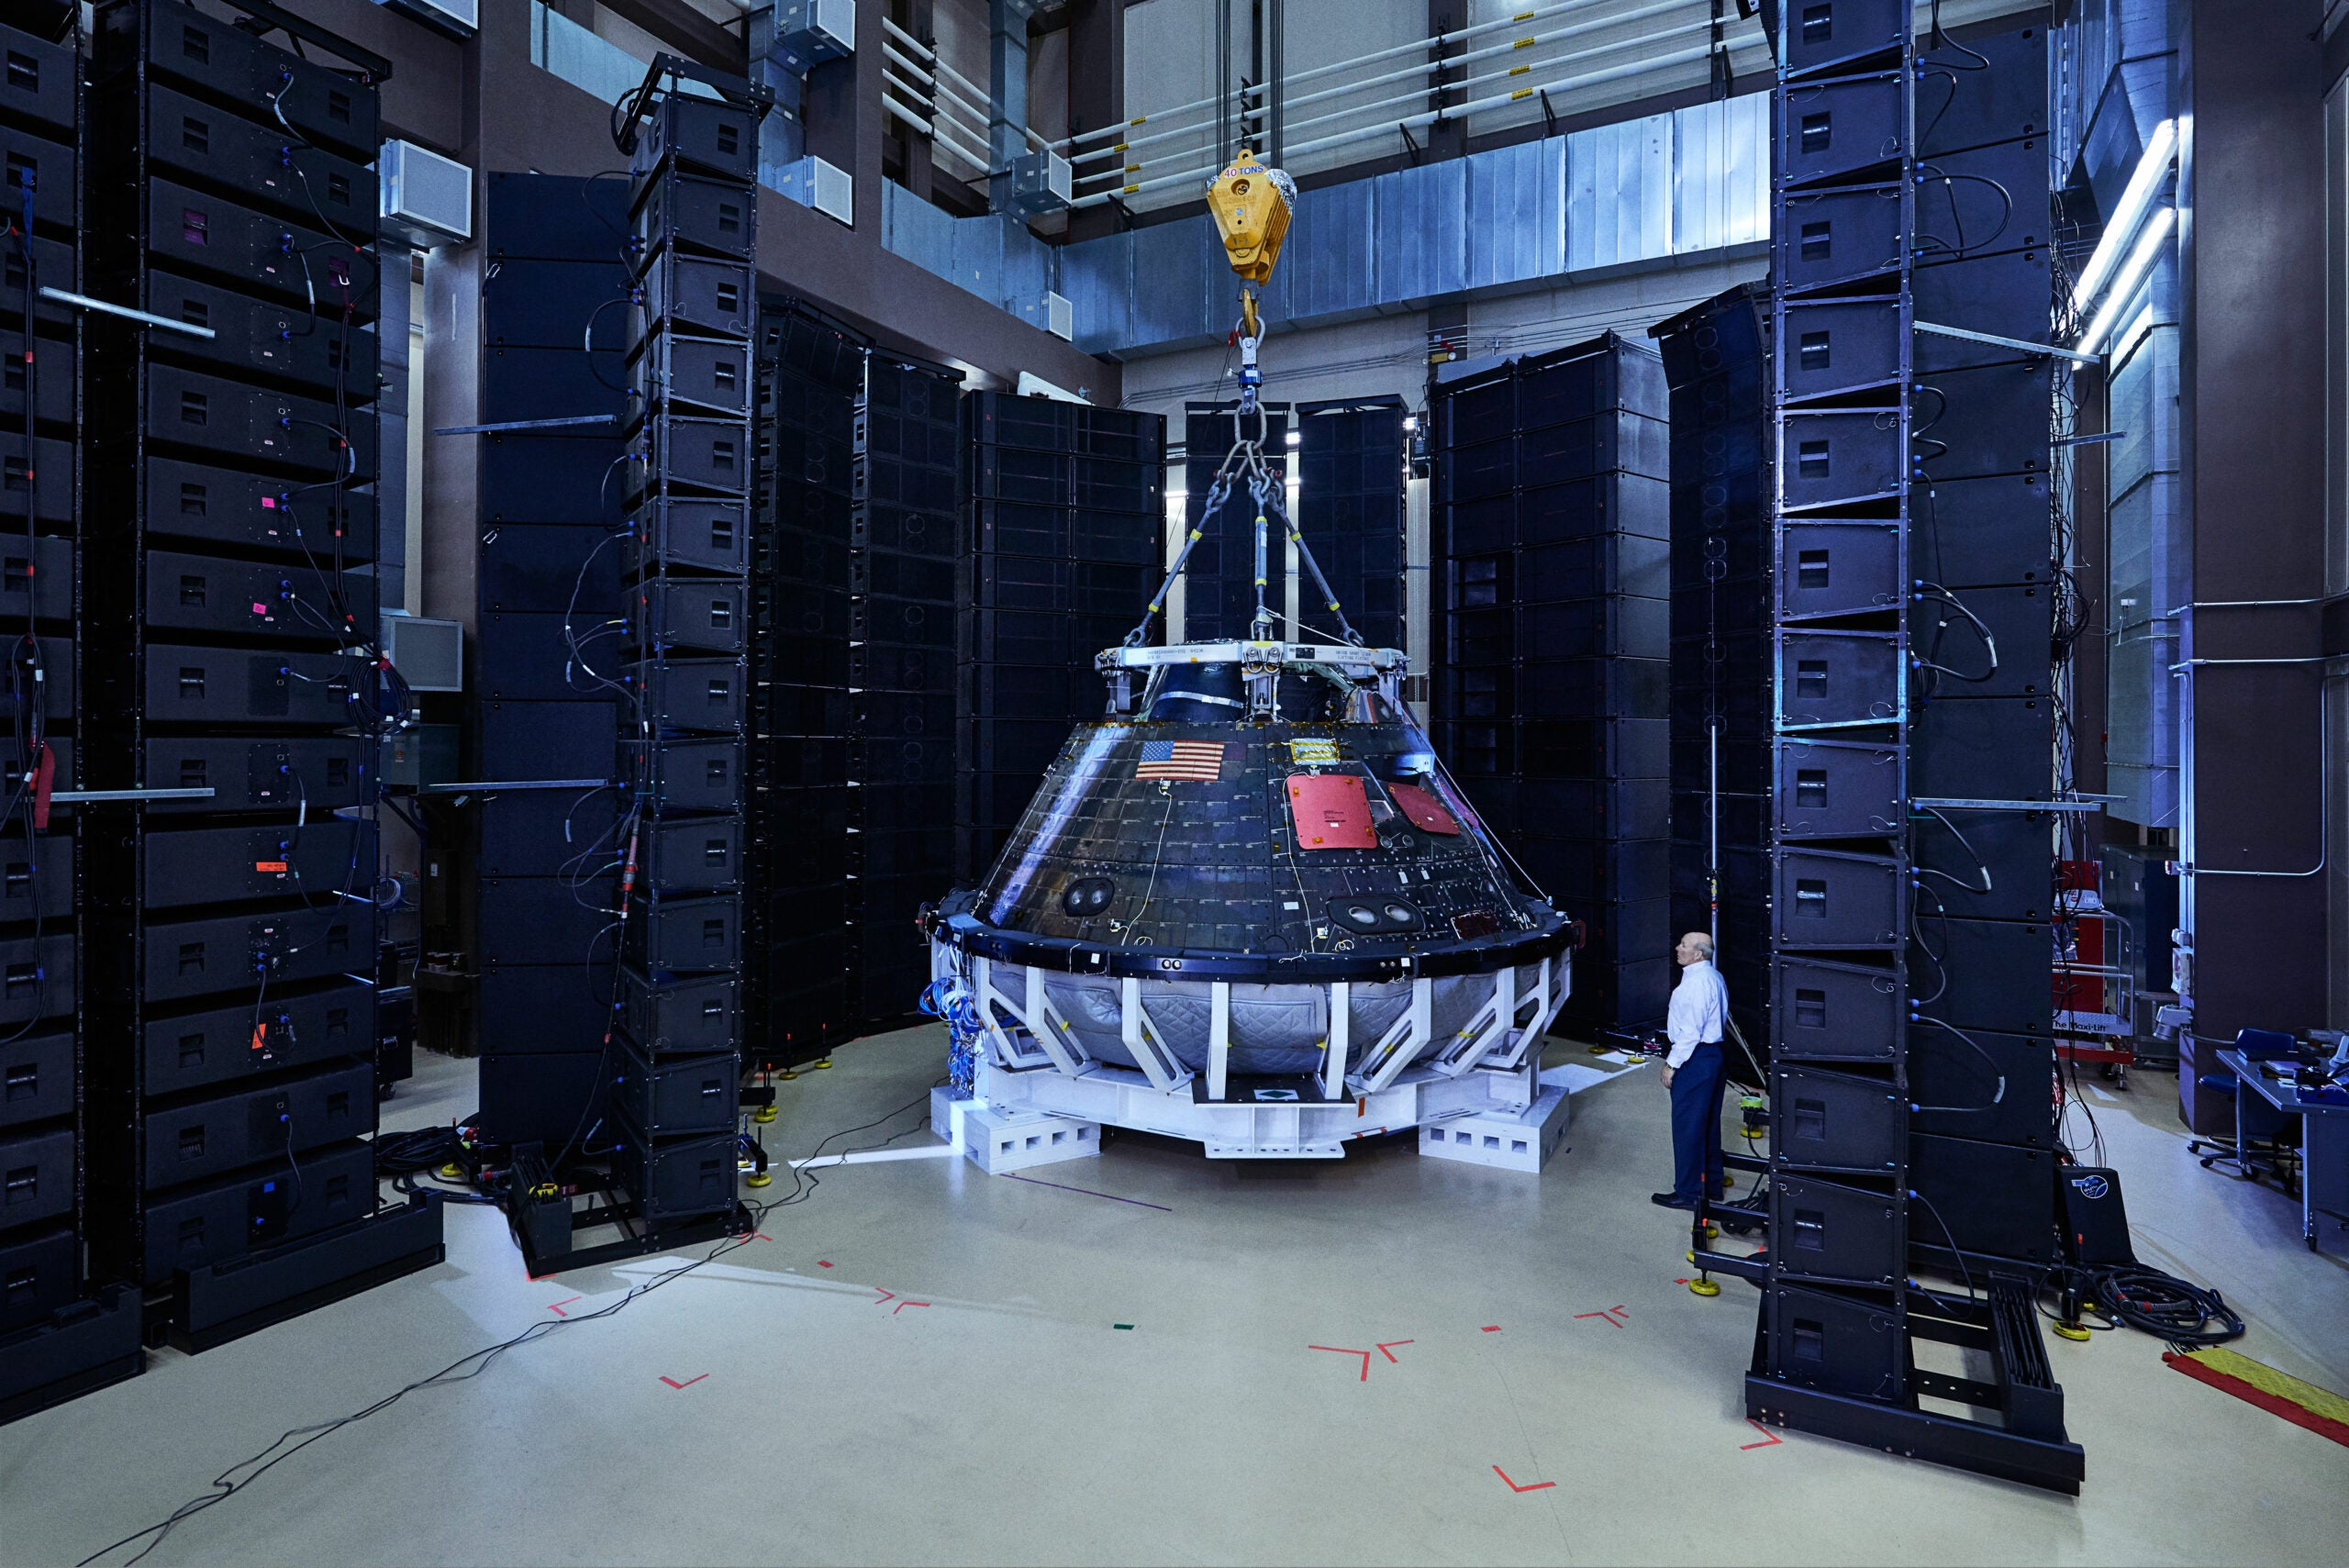 Why Lockheed Martin Is Blasting The Orion Spaceship With 1,500 Speakers